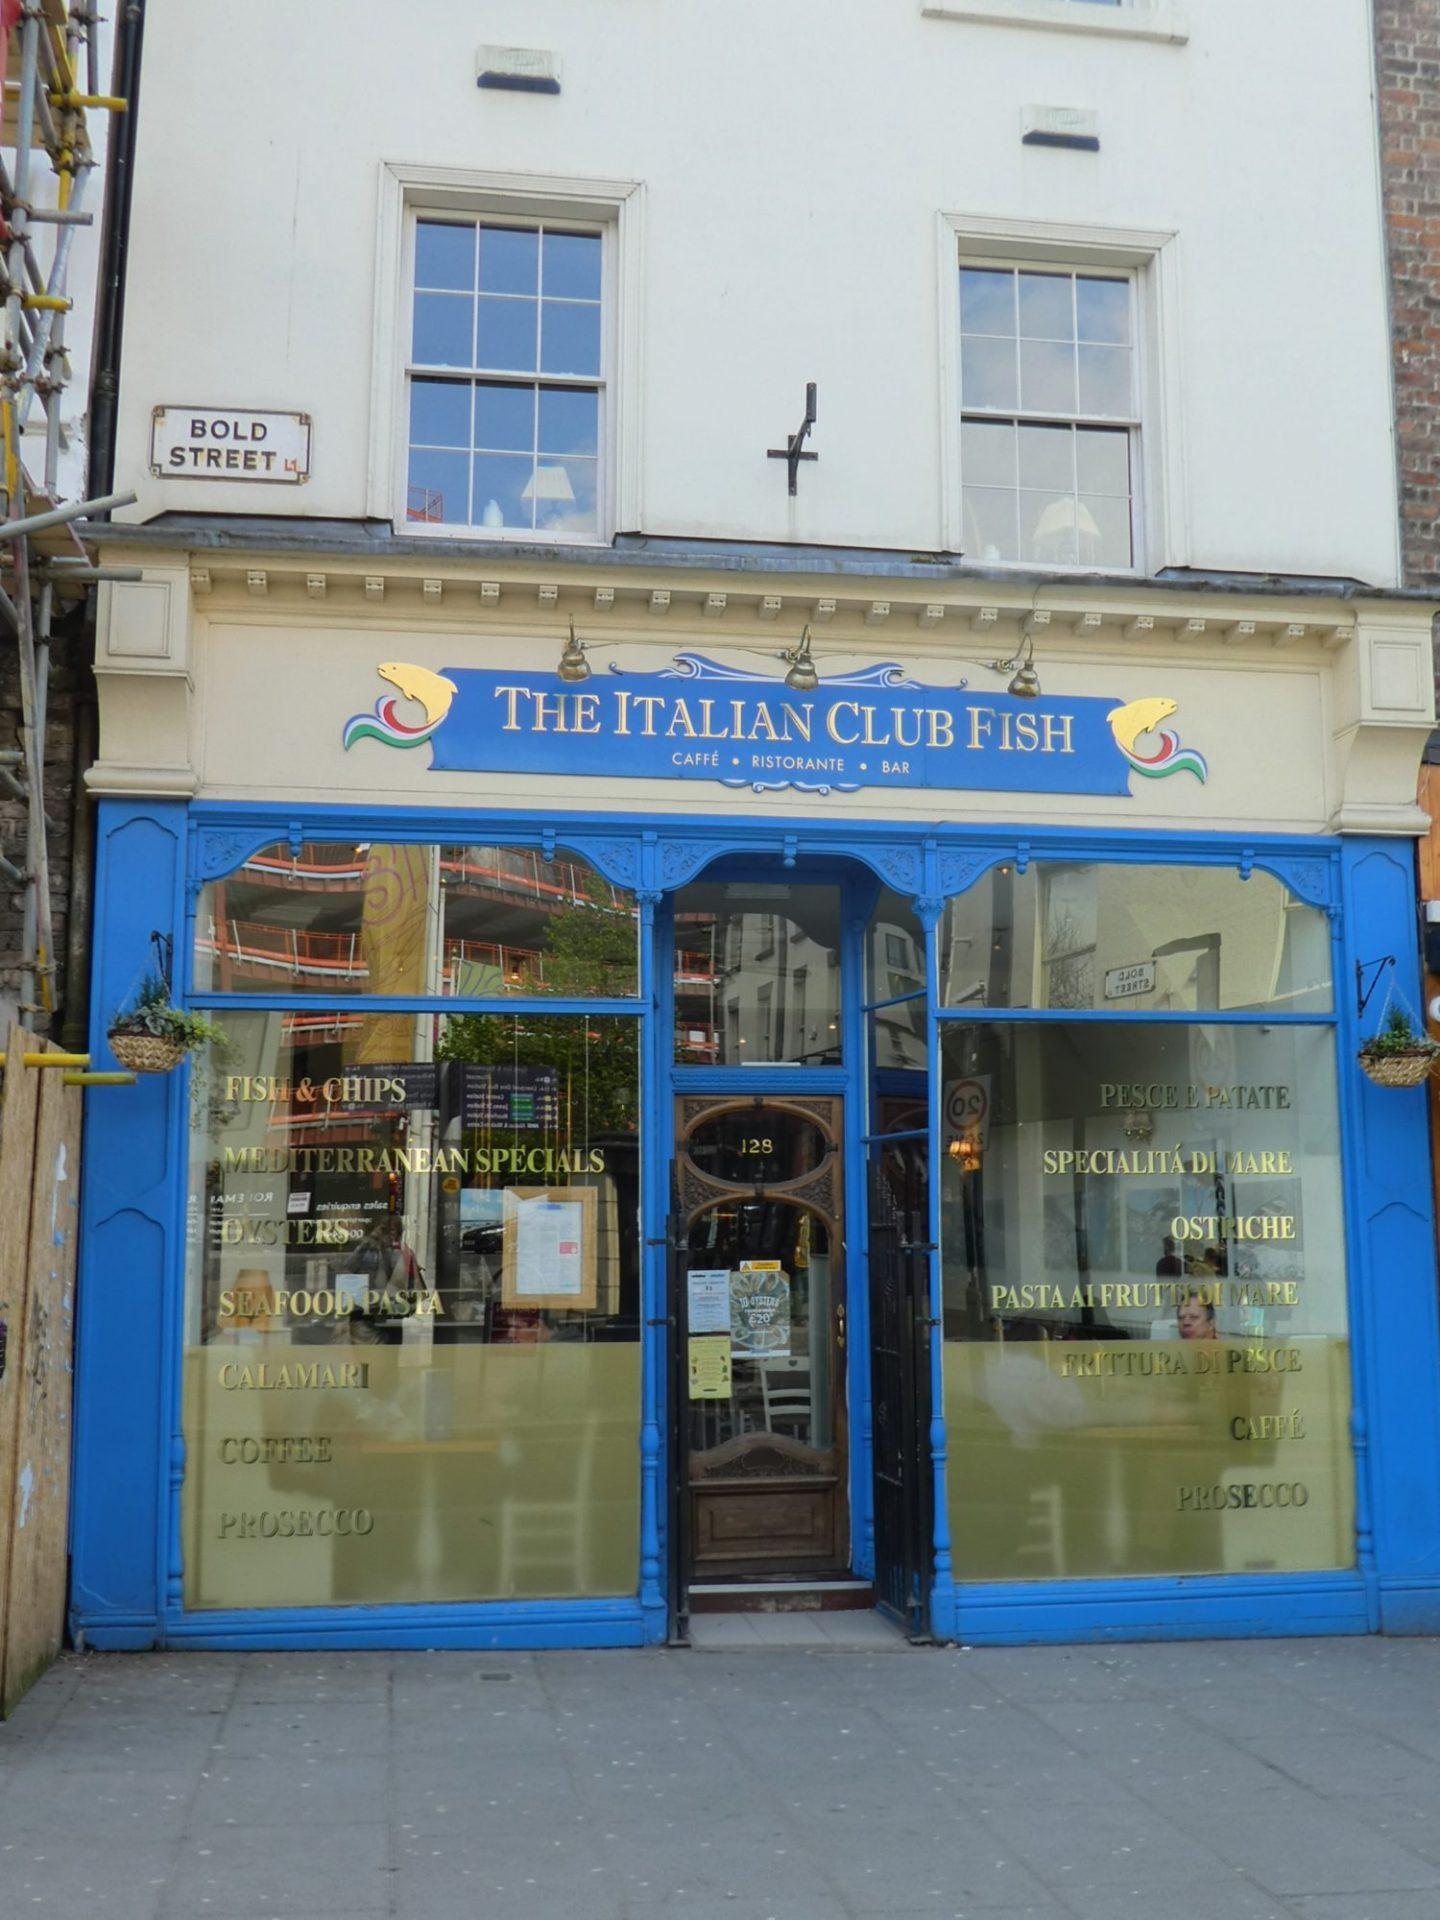 Review: Eating Gluten Free at The Italian Club Fish, Liverpool